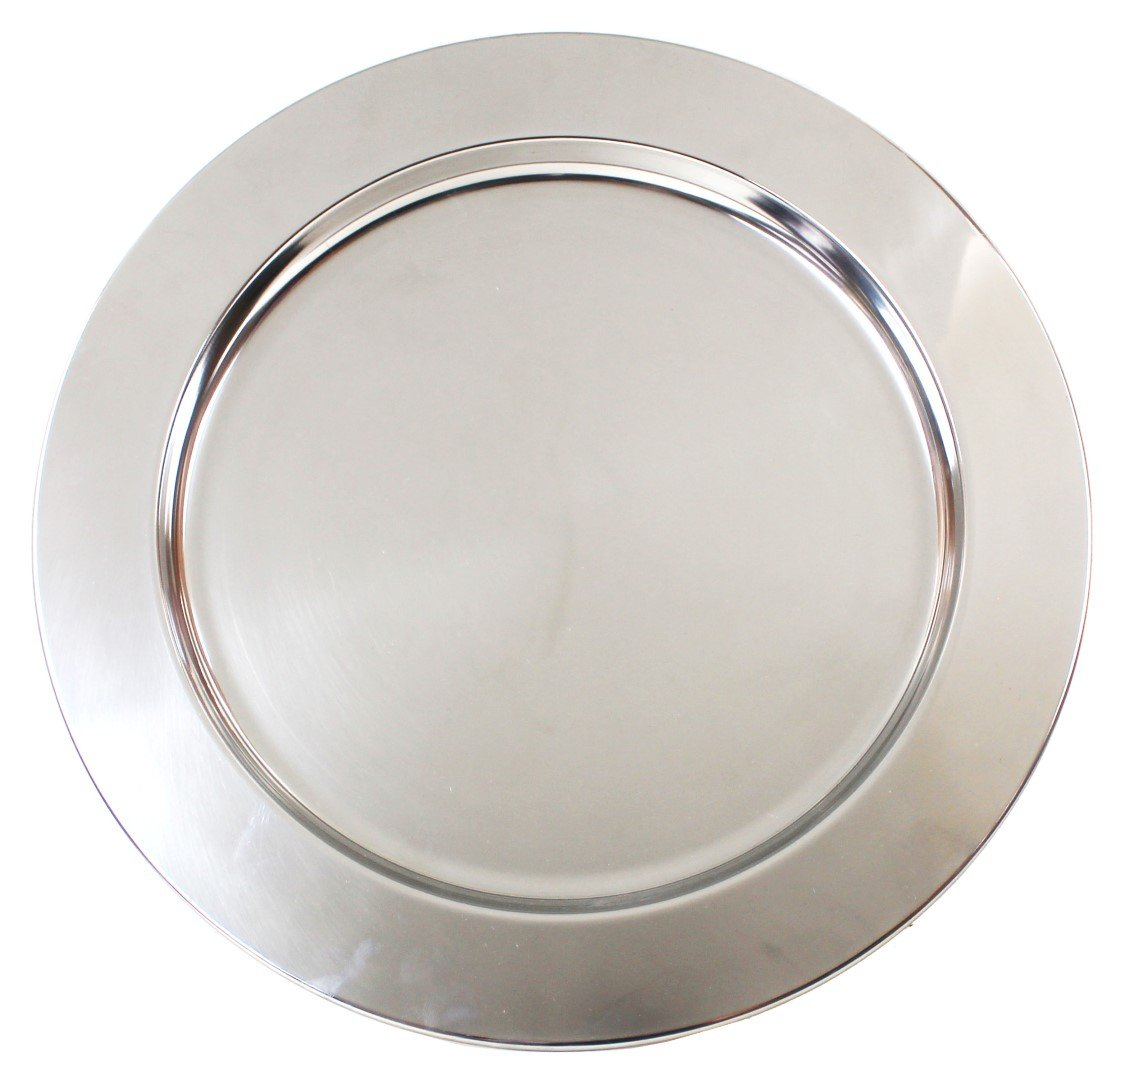 Ms Lovely Silver Stainless Steel Metal Charger Plates - Set of 4-13 inch